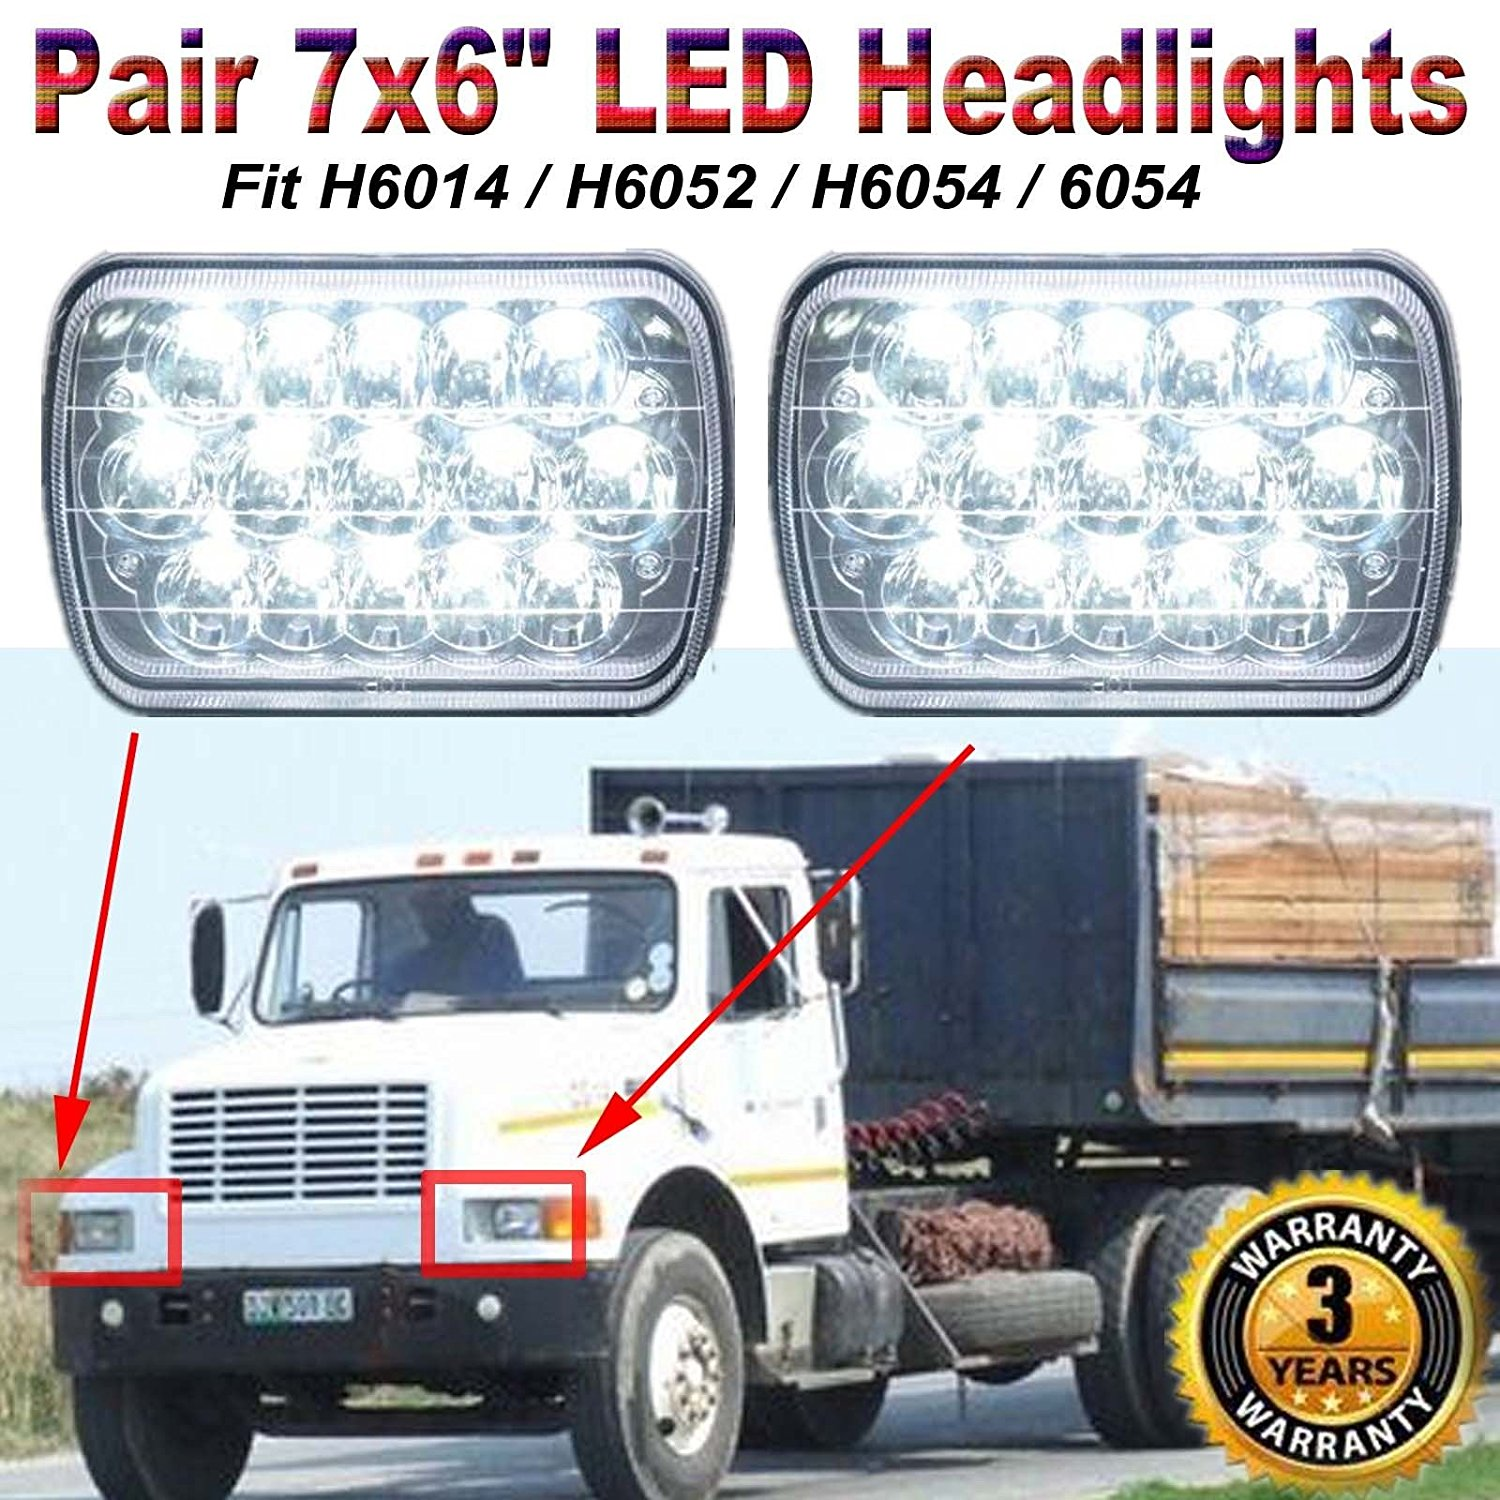 Sealed Beam LED Headlights 7x6 5x7 Sealed Beam for International 5900i 7300 7400 9200 9400 9900 Super Bright H6014 / H6052 / H6054 / 6054 Conversion Kit